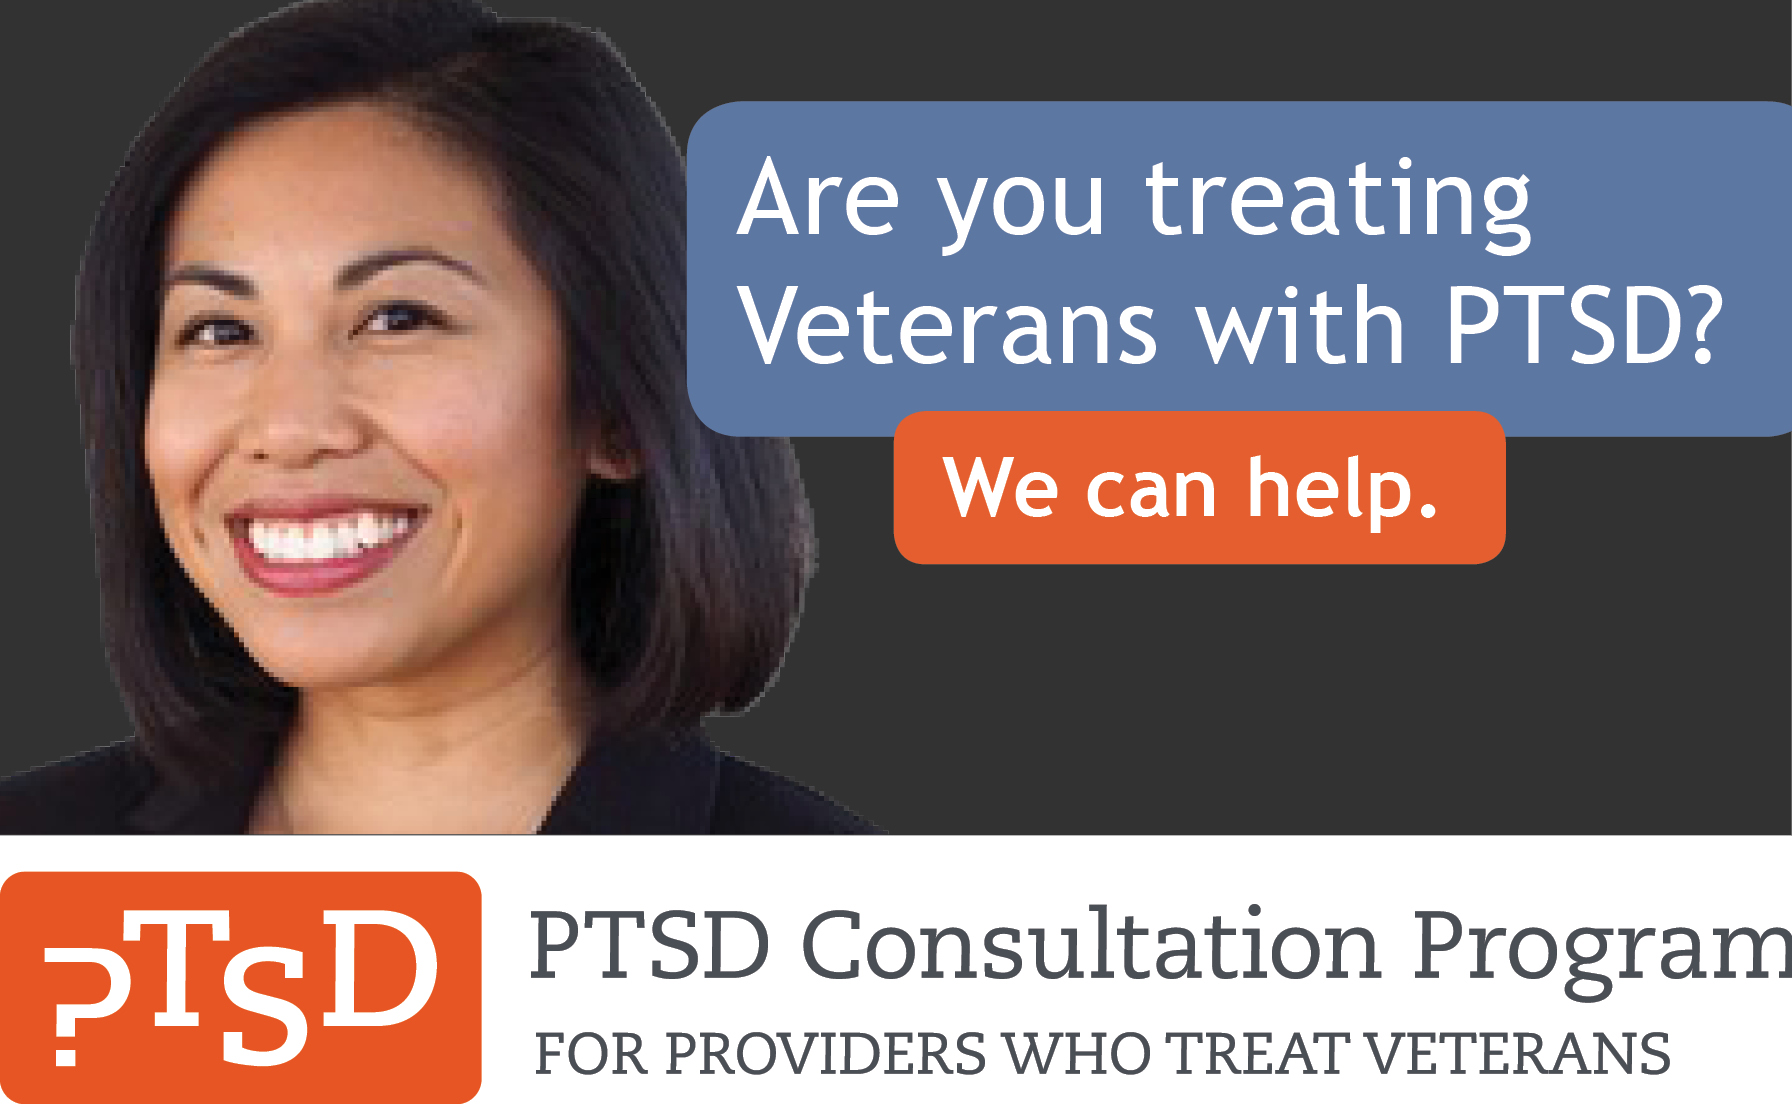 Are you treating Veterans with PTSD? We can help. PTSD Consultation Program for providers who treat veterans.